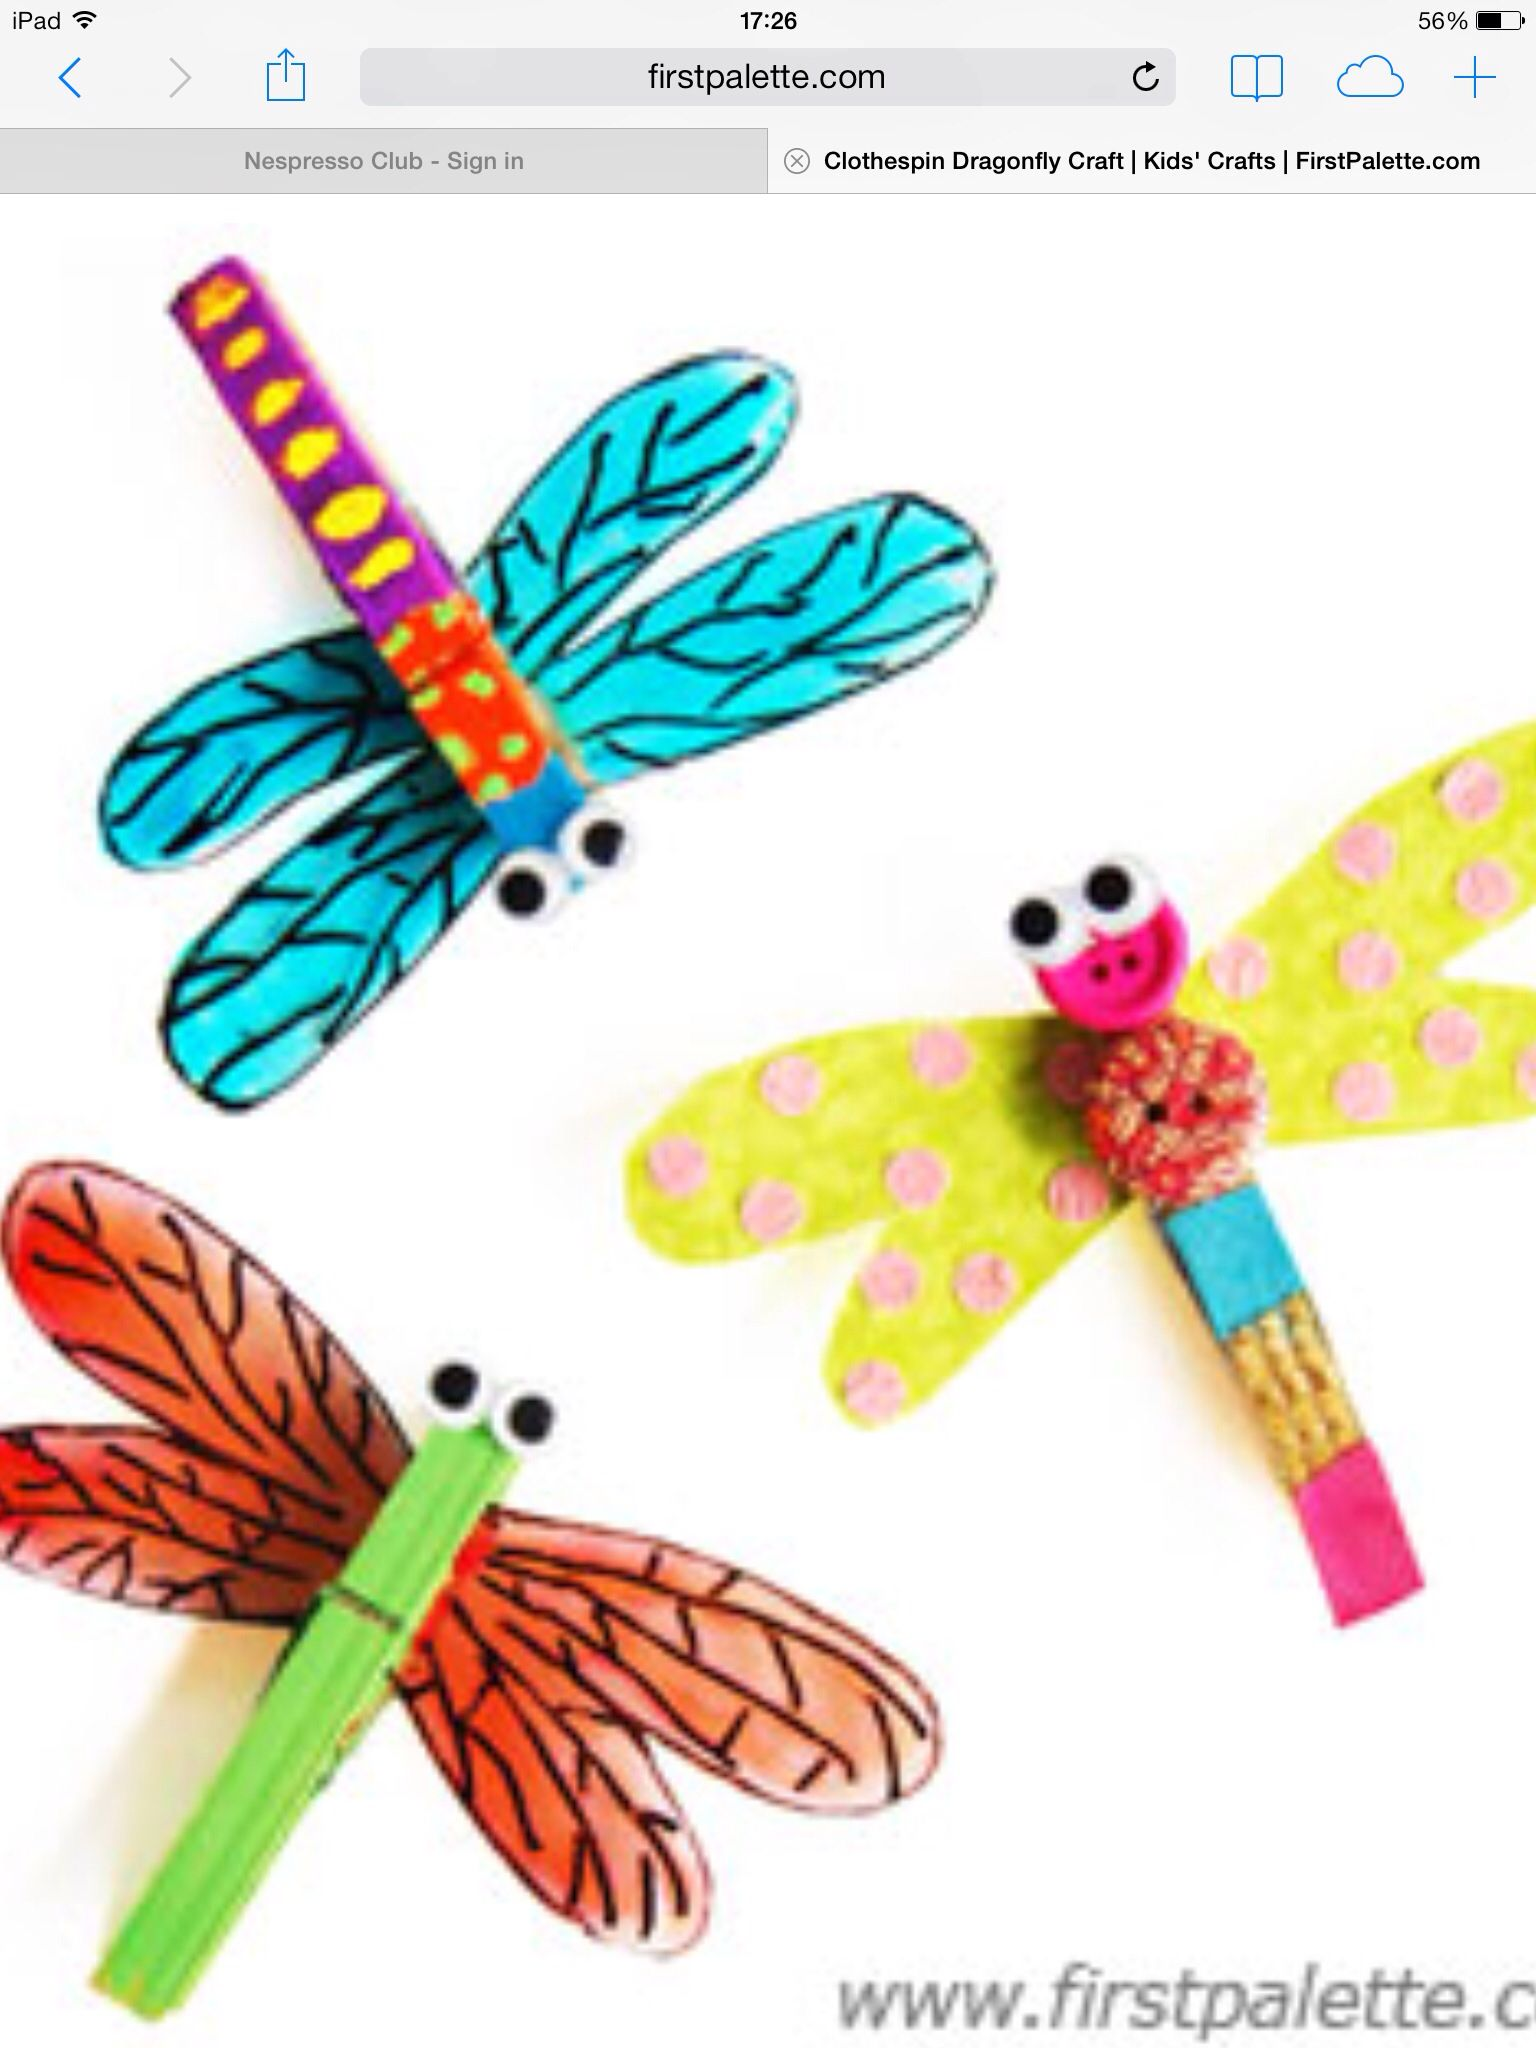 Dragonfly sycamores kids pinterest dragonflies craft and clothespin dragonfly craft rather than a summer project im thinking of having the kids make some for teachers for an end of year gift jeuxipadfo Gallery